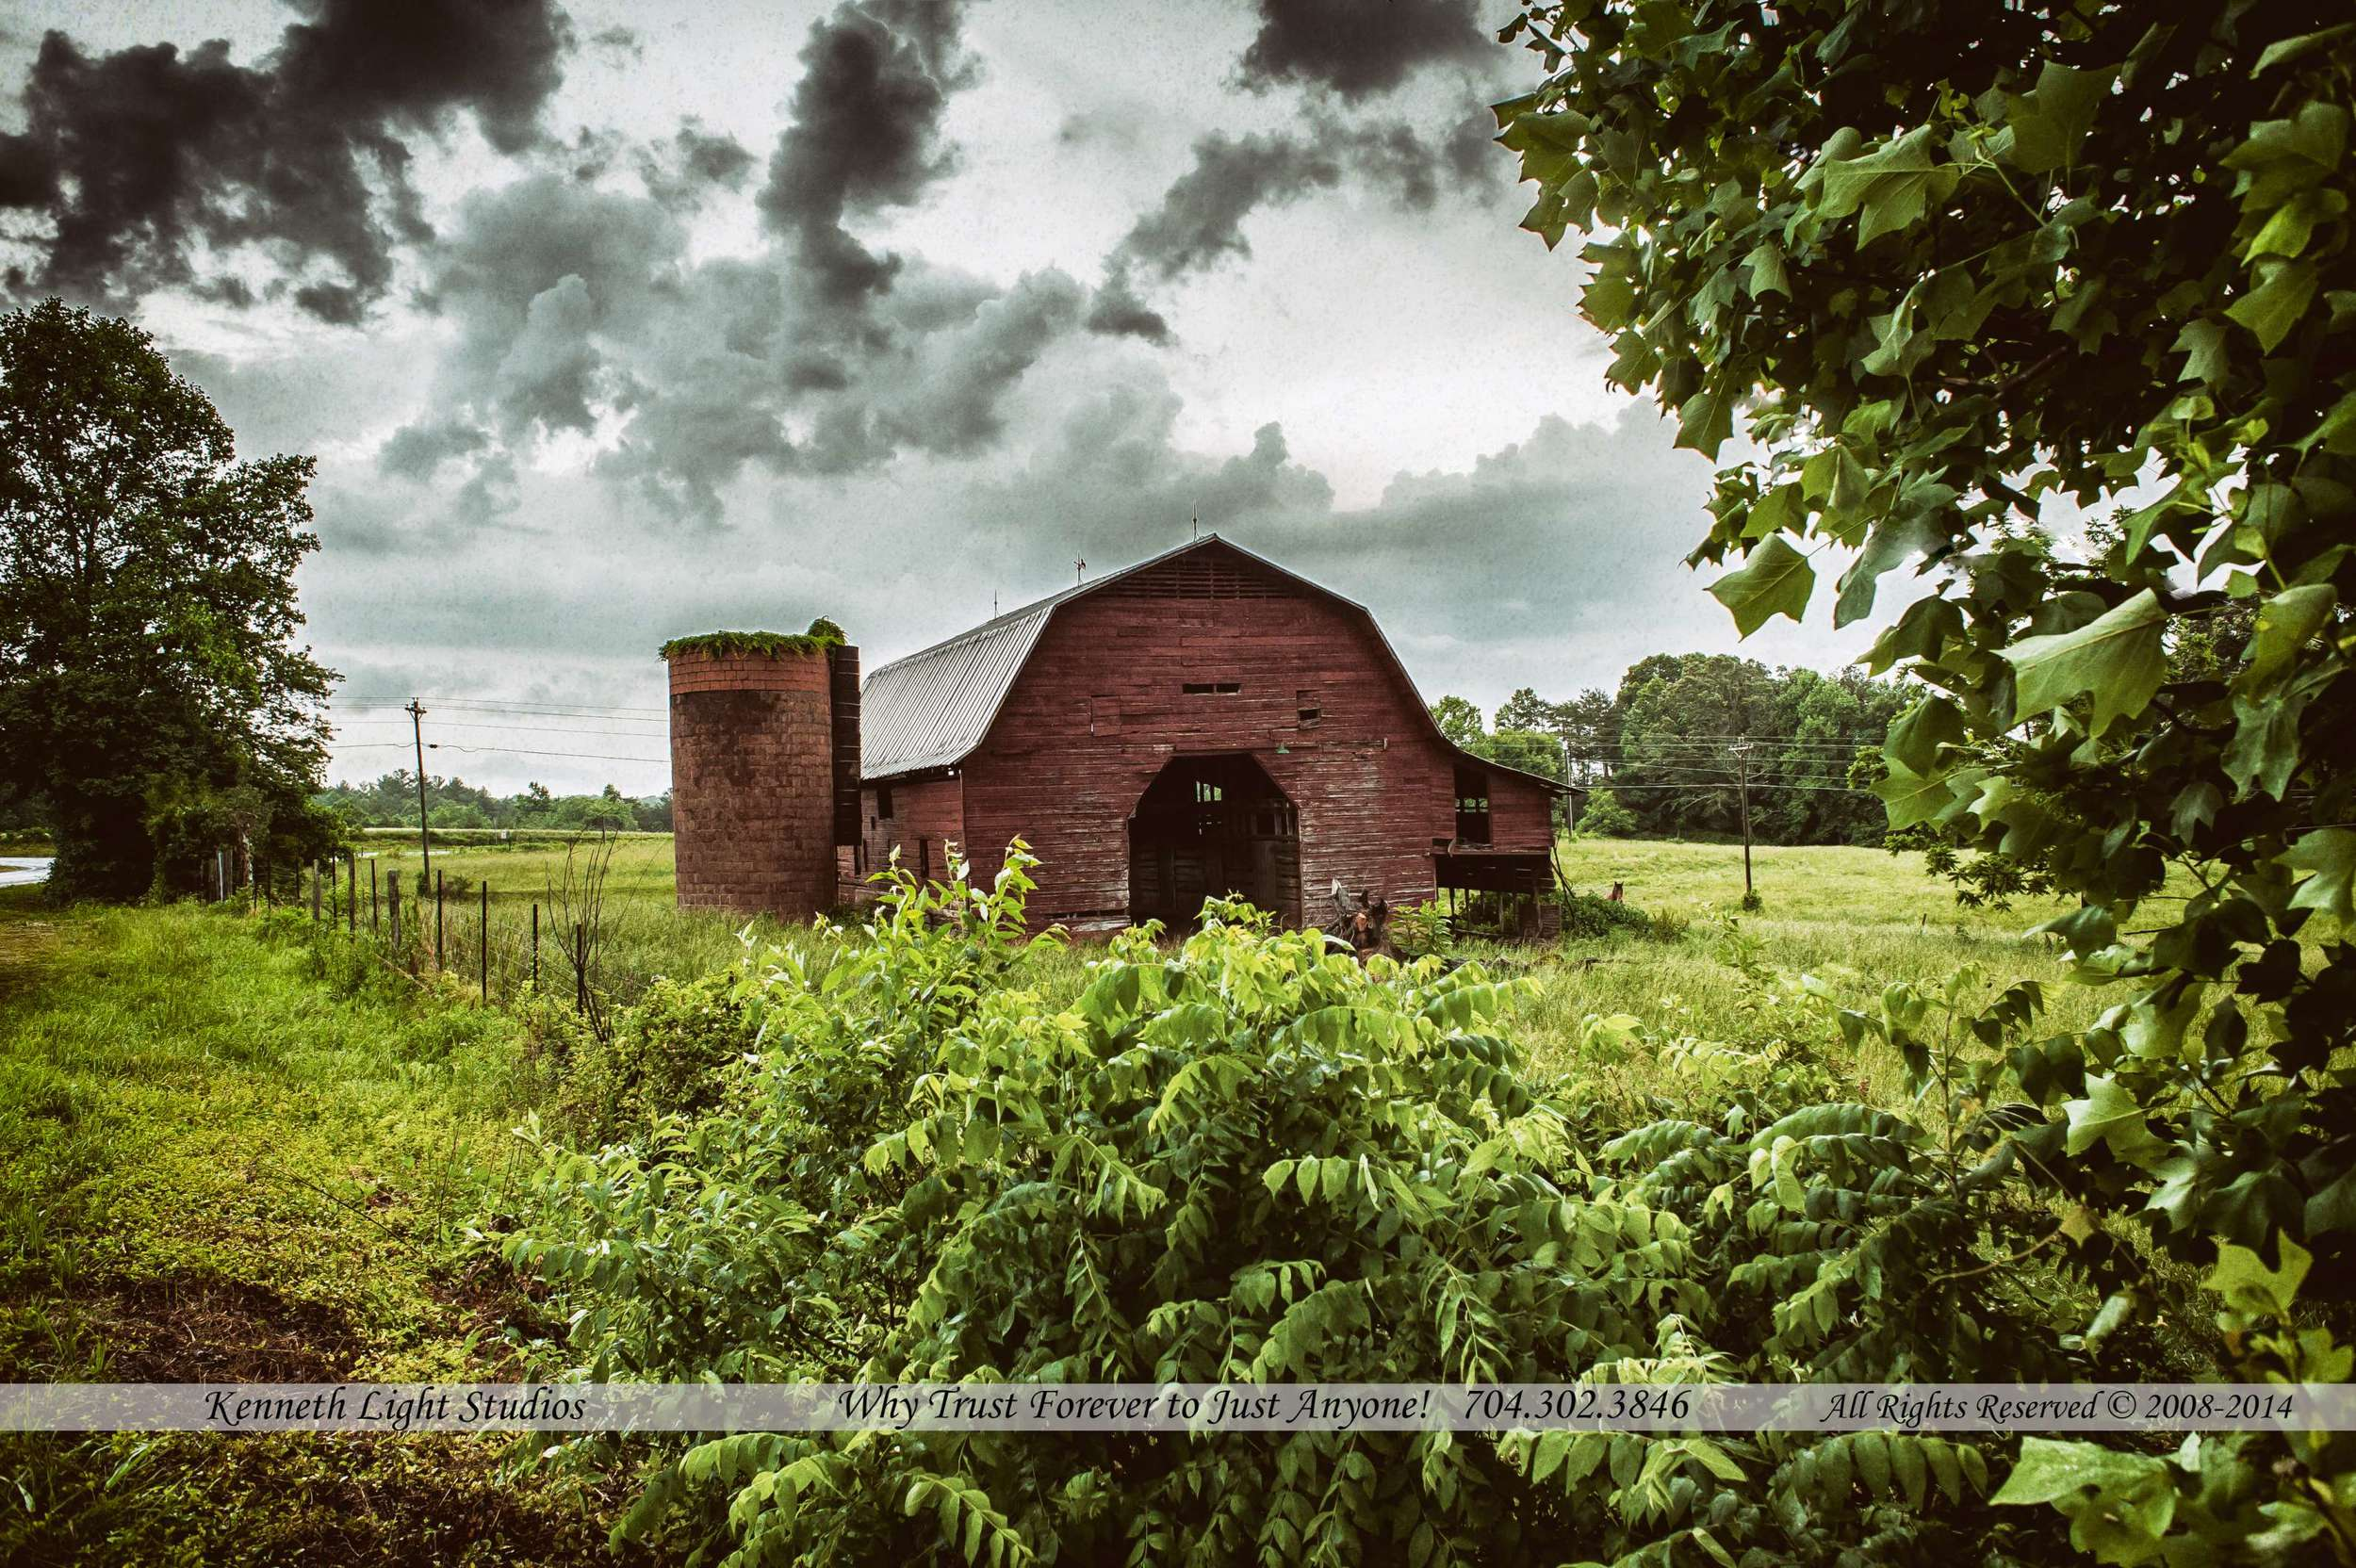 The Barn from another angle, love the clouds on this one